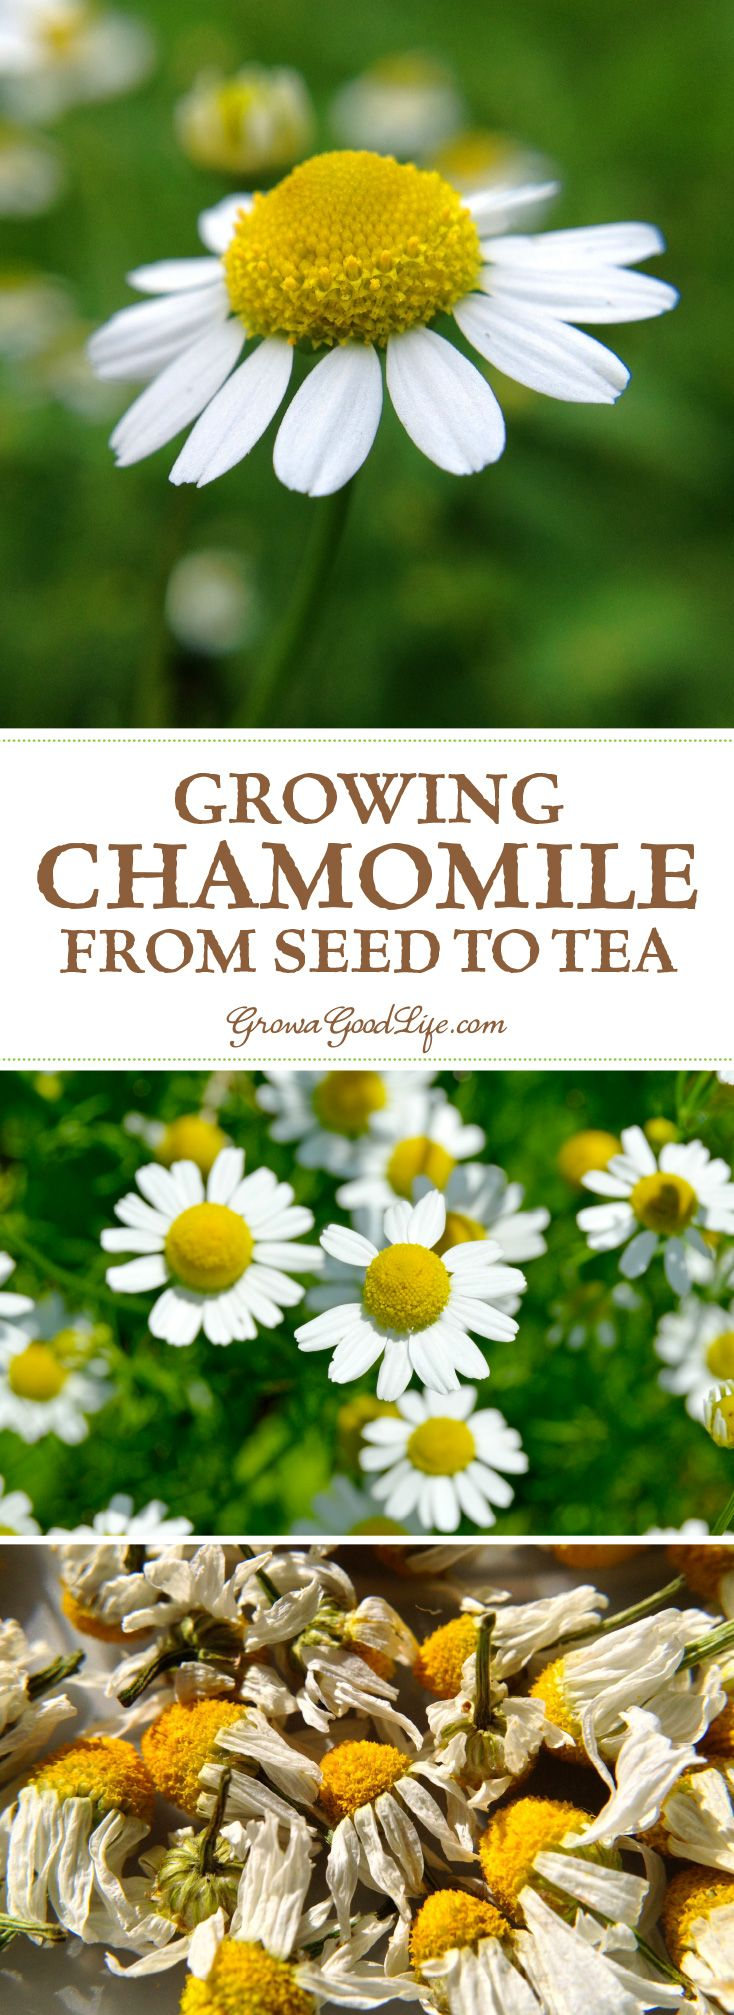 Make Sure To Rotate Your Chamomile Seedlings Every Few Days So They Do Not Grow Too Far In One Direction Chamomile Growing Planting Herbs Aromatic Plant